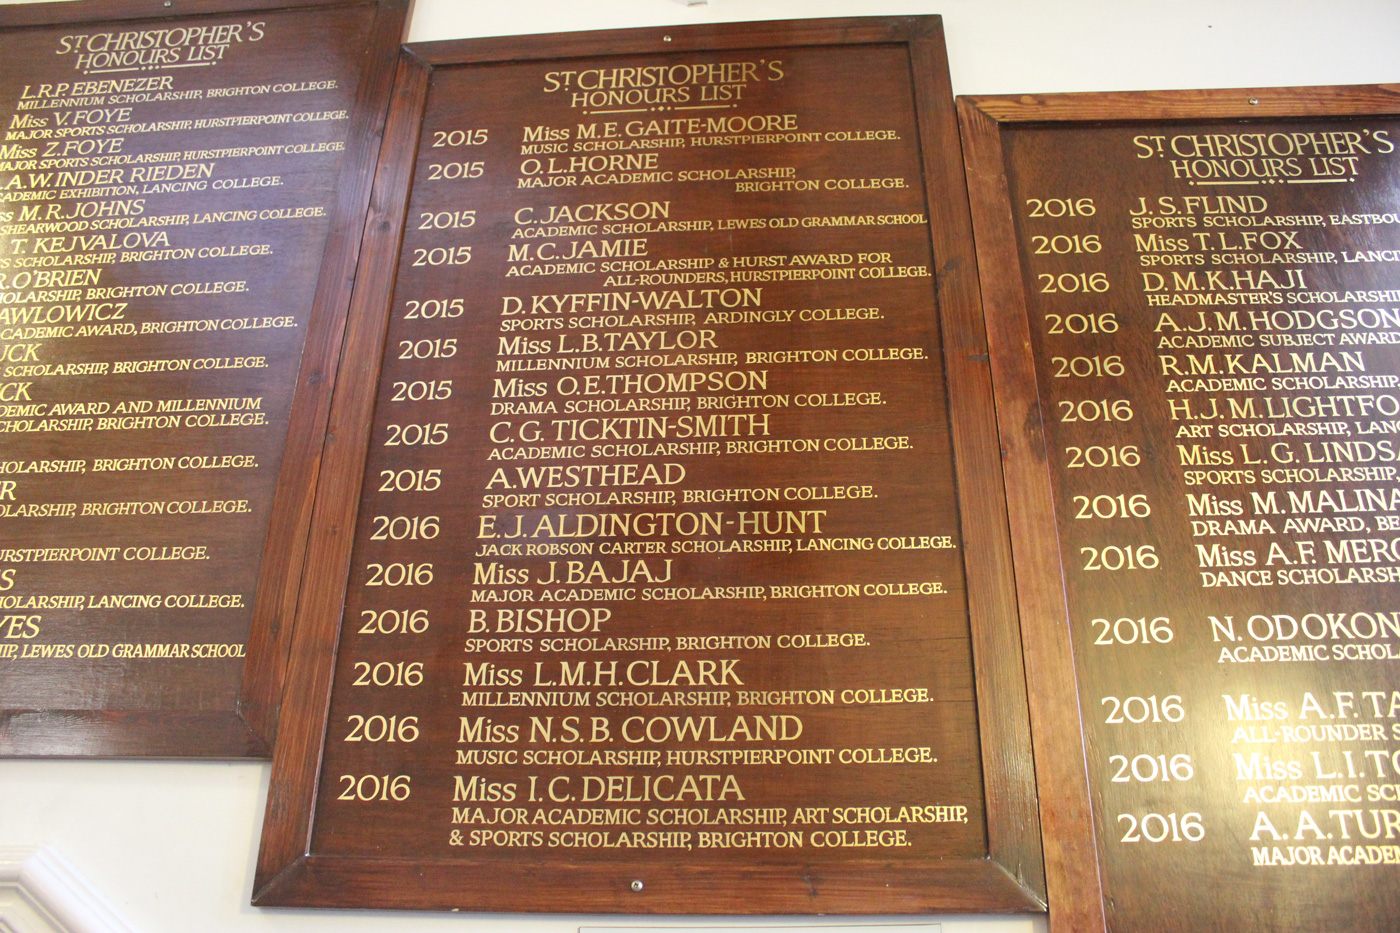 Are you still on the Honours Boards somewhere? They go all the way back to the first Scholarship award in 1929...